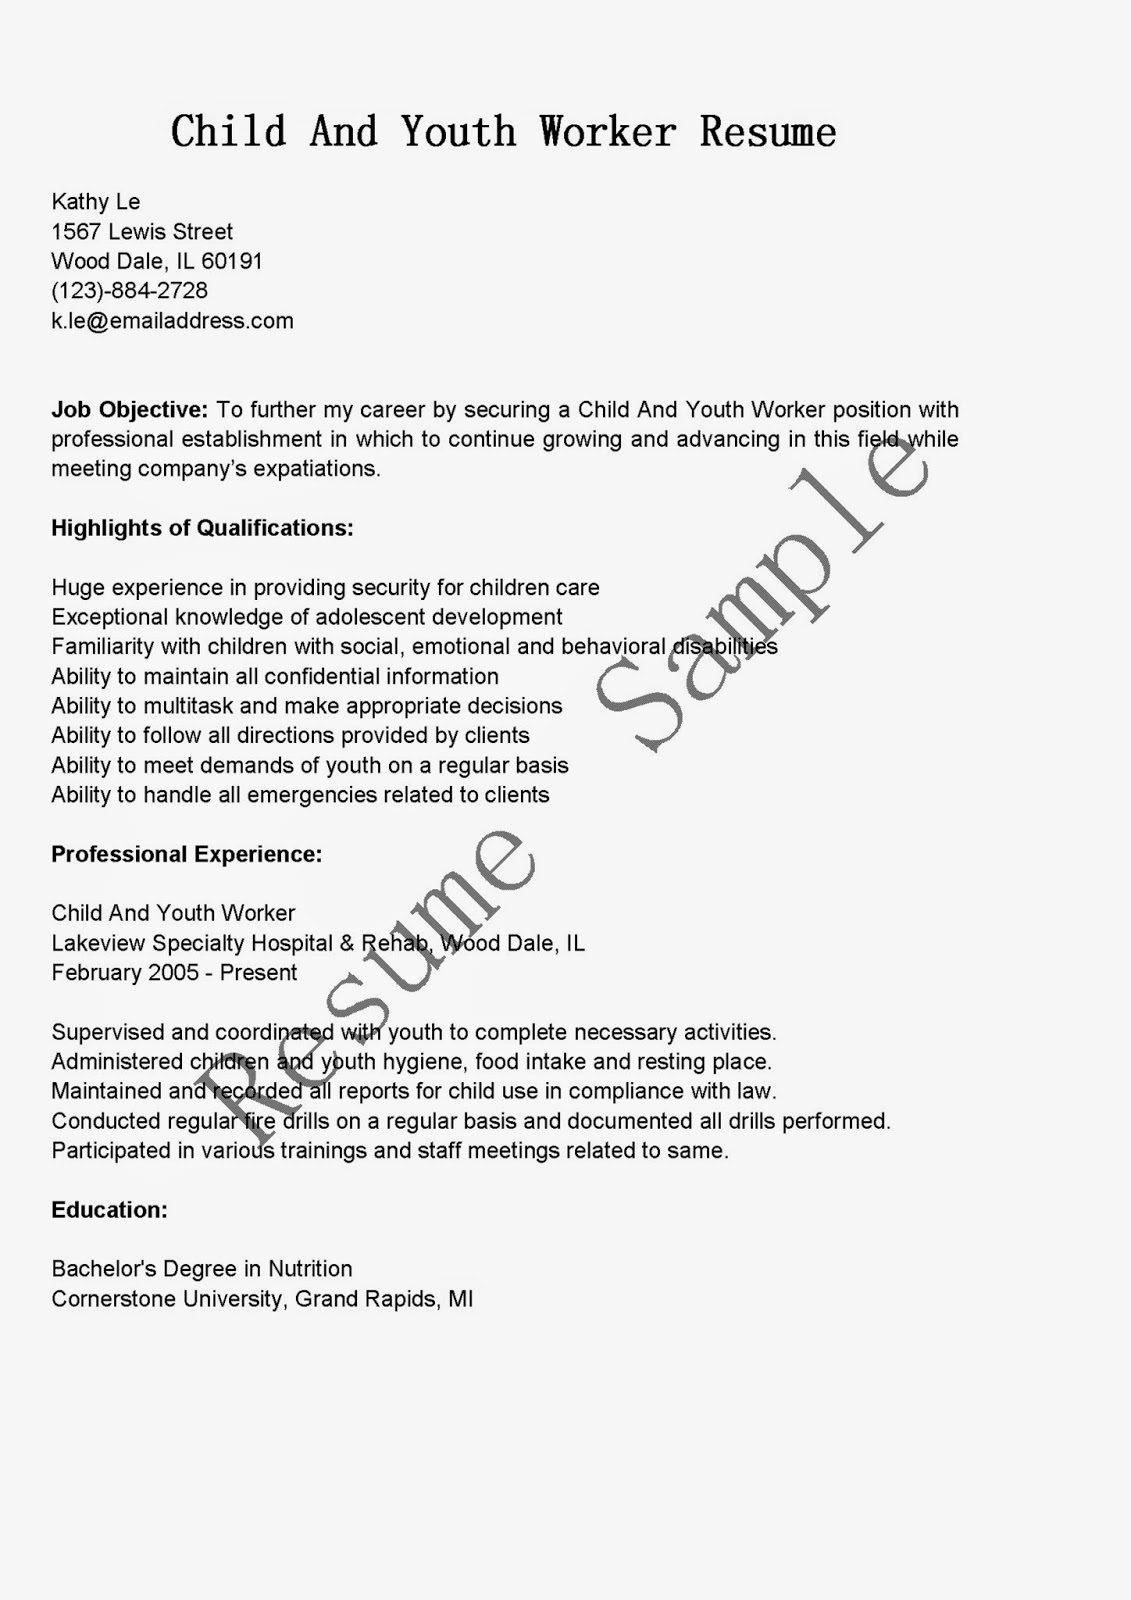 Youth Resume Child And Youth Worker Resume Examples Talktomartyb